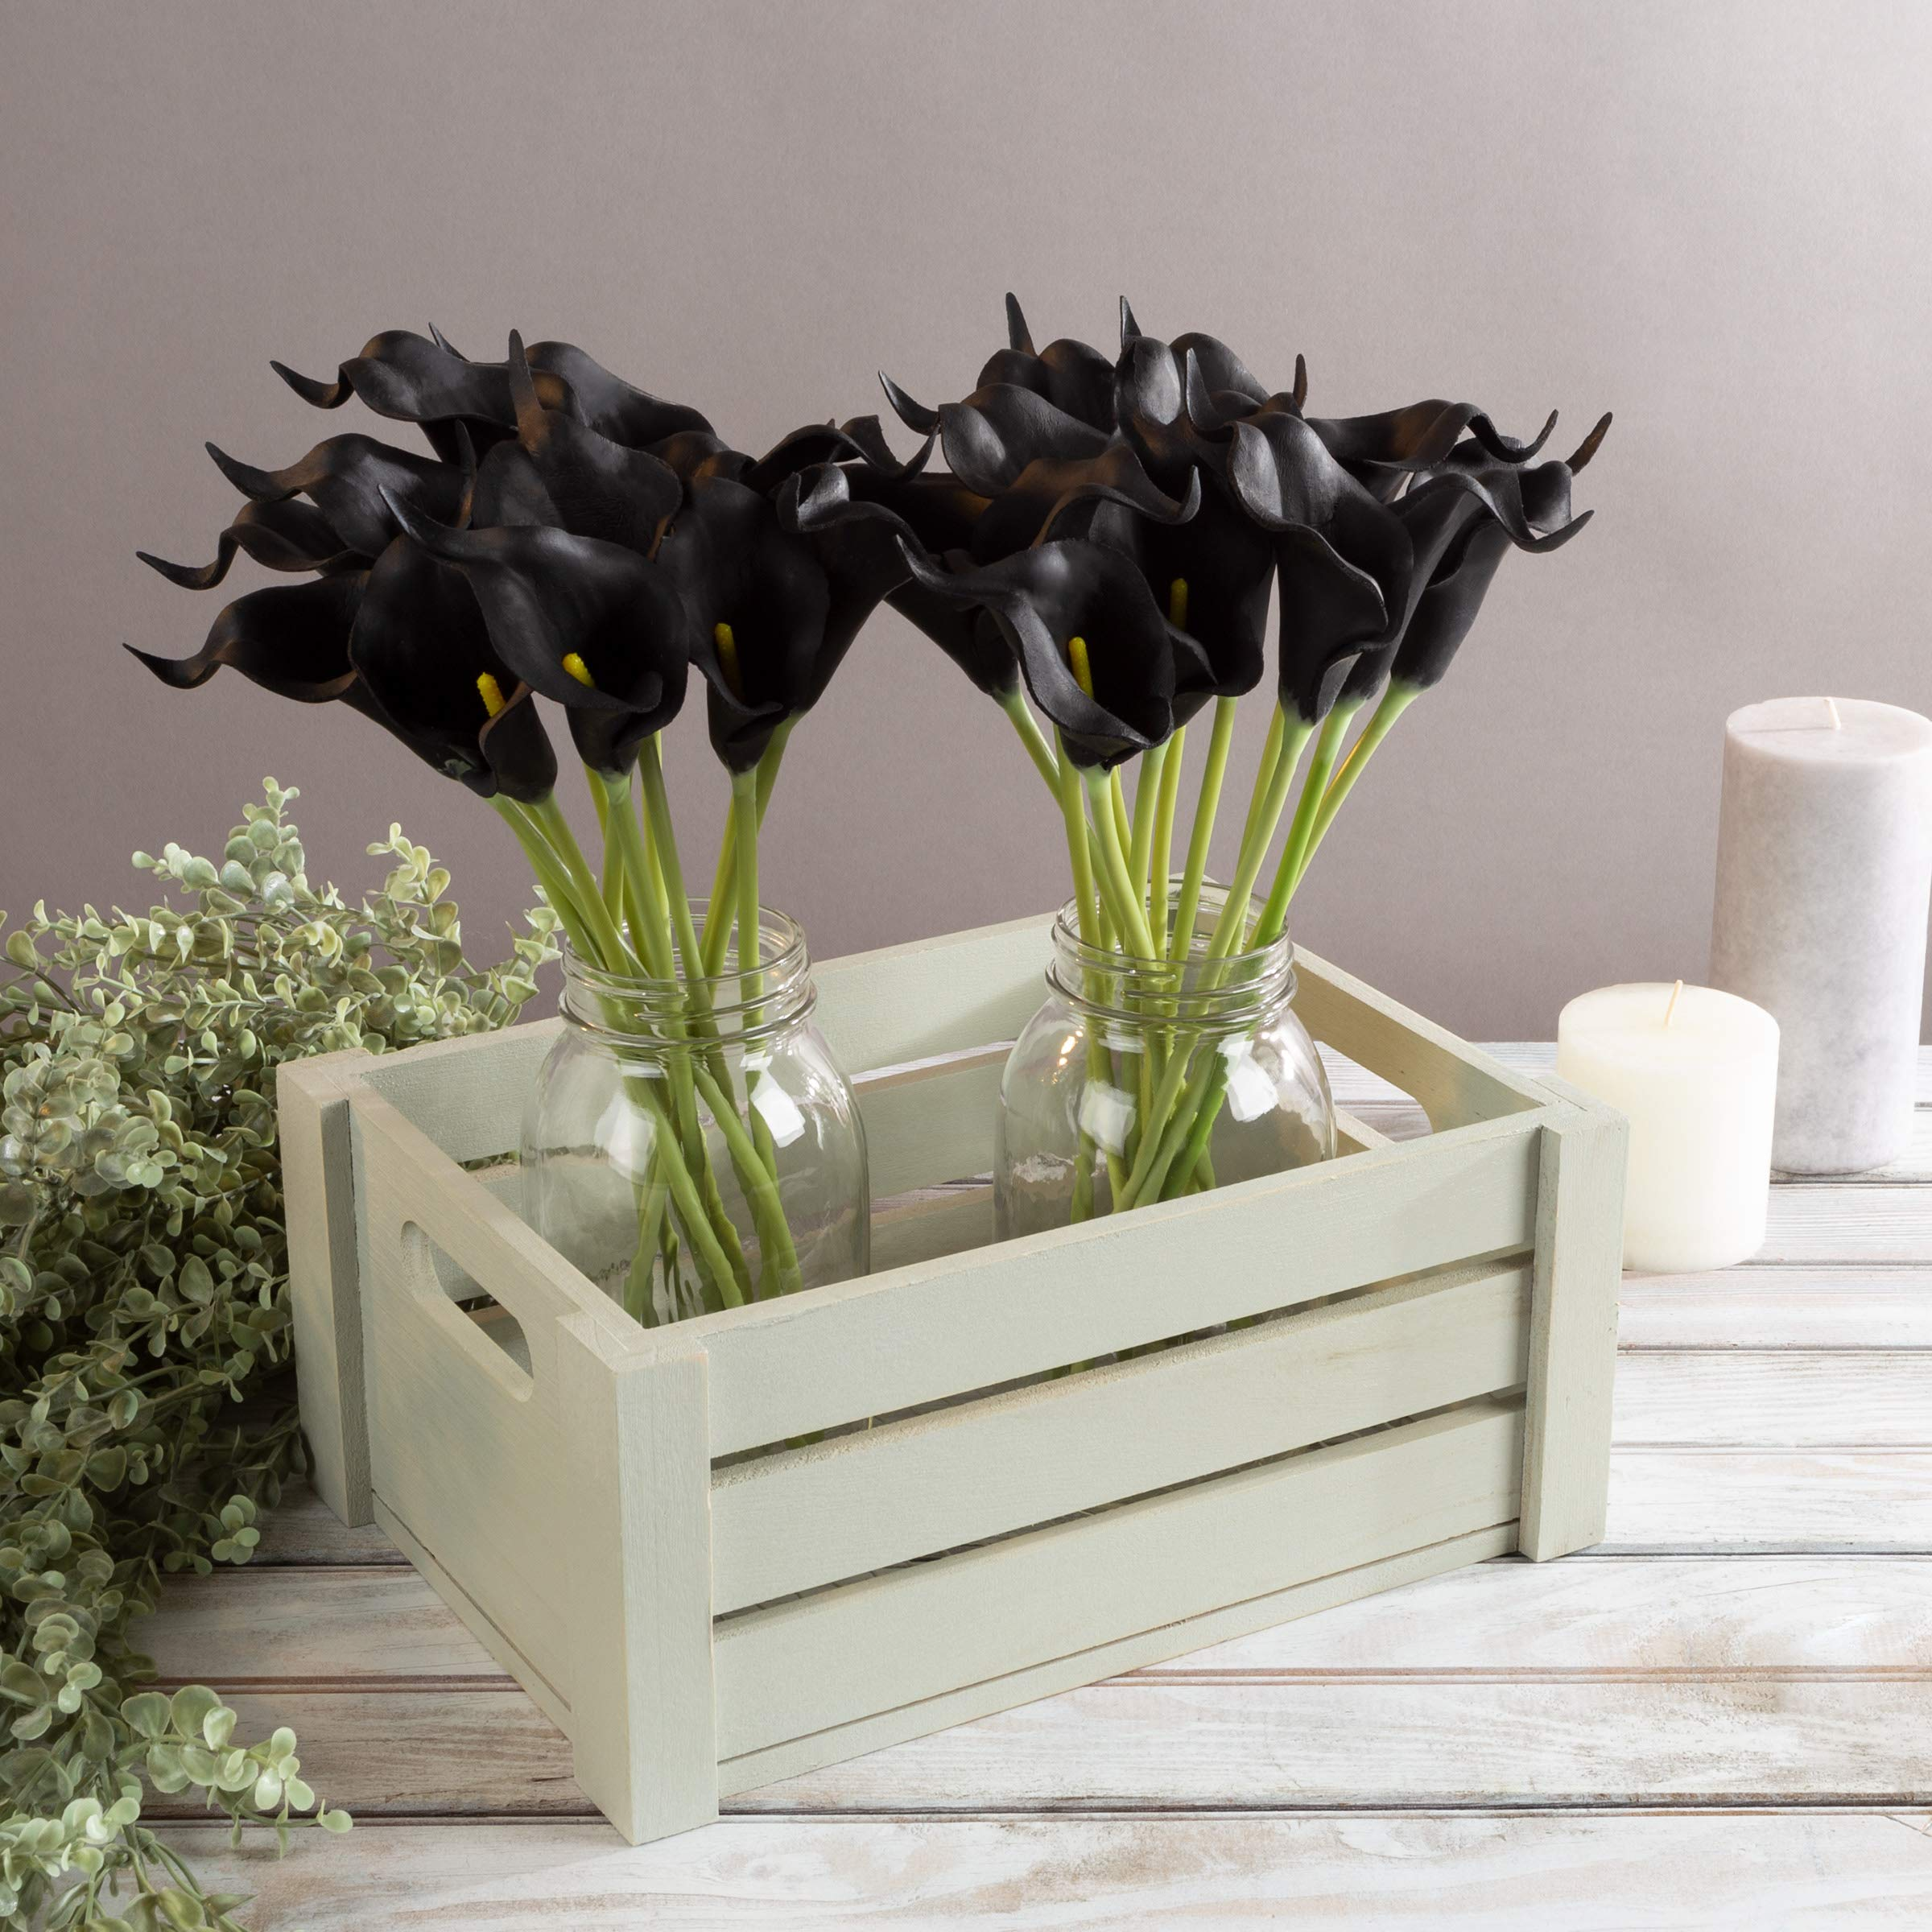 Pure Garden Artificial Calla-Lily with Stems - Real Touch Fake Flowers for Home Decor Wedding, Bridal/Baby Shower, More-24 Pc Set), Black by Pure Garden